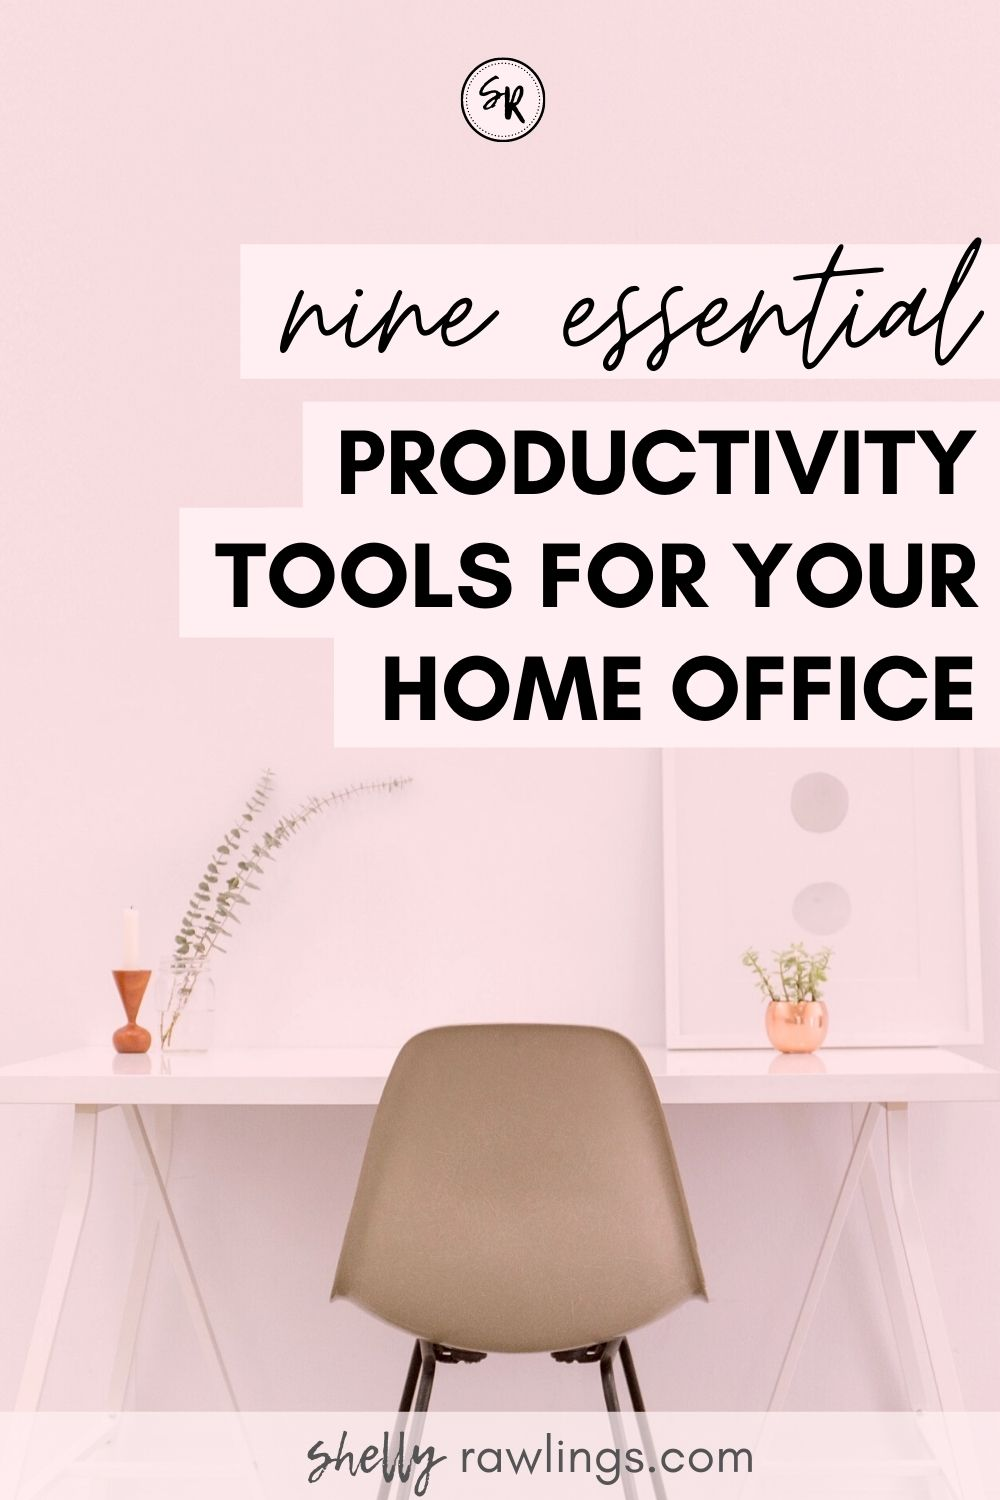 9 ITEMS I KEEP ON MY DESK WHILE WORKING FROM HOME | PRODUCTIVITY TOOLS FOR REMOTE WORKERS AND FREELANCERS | SHELLYRAWLINGS.COM